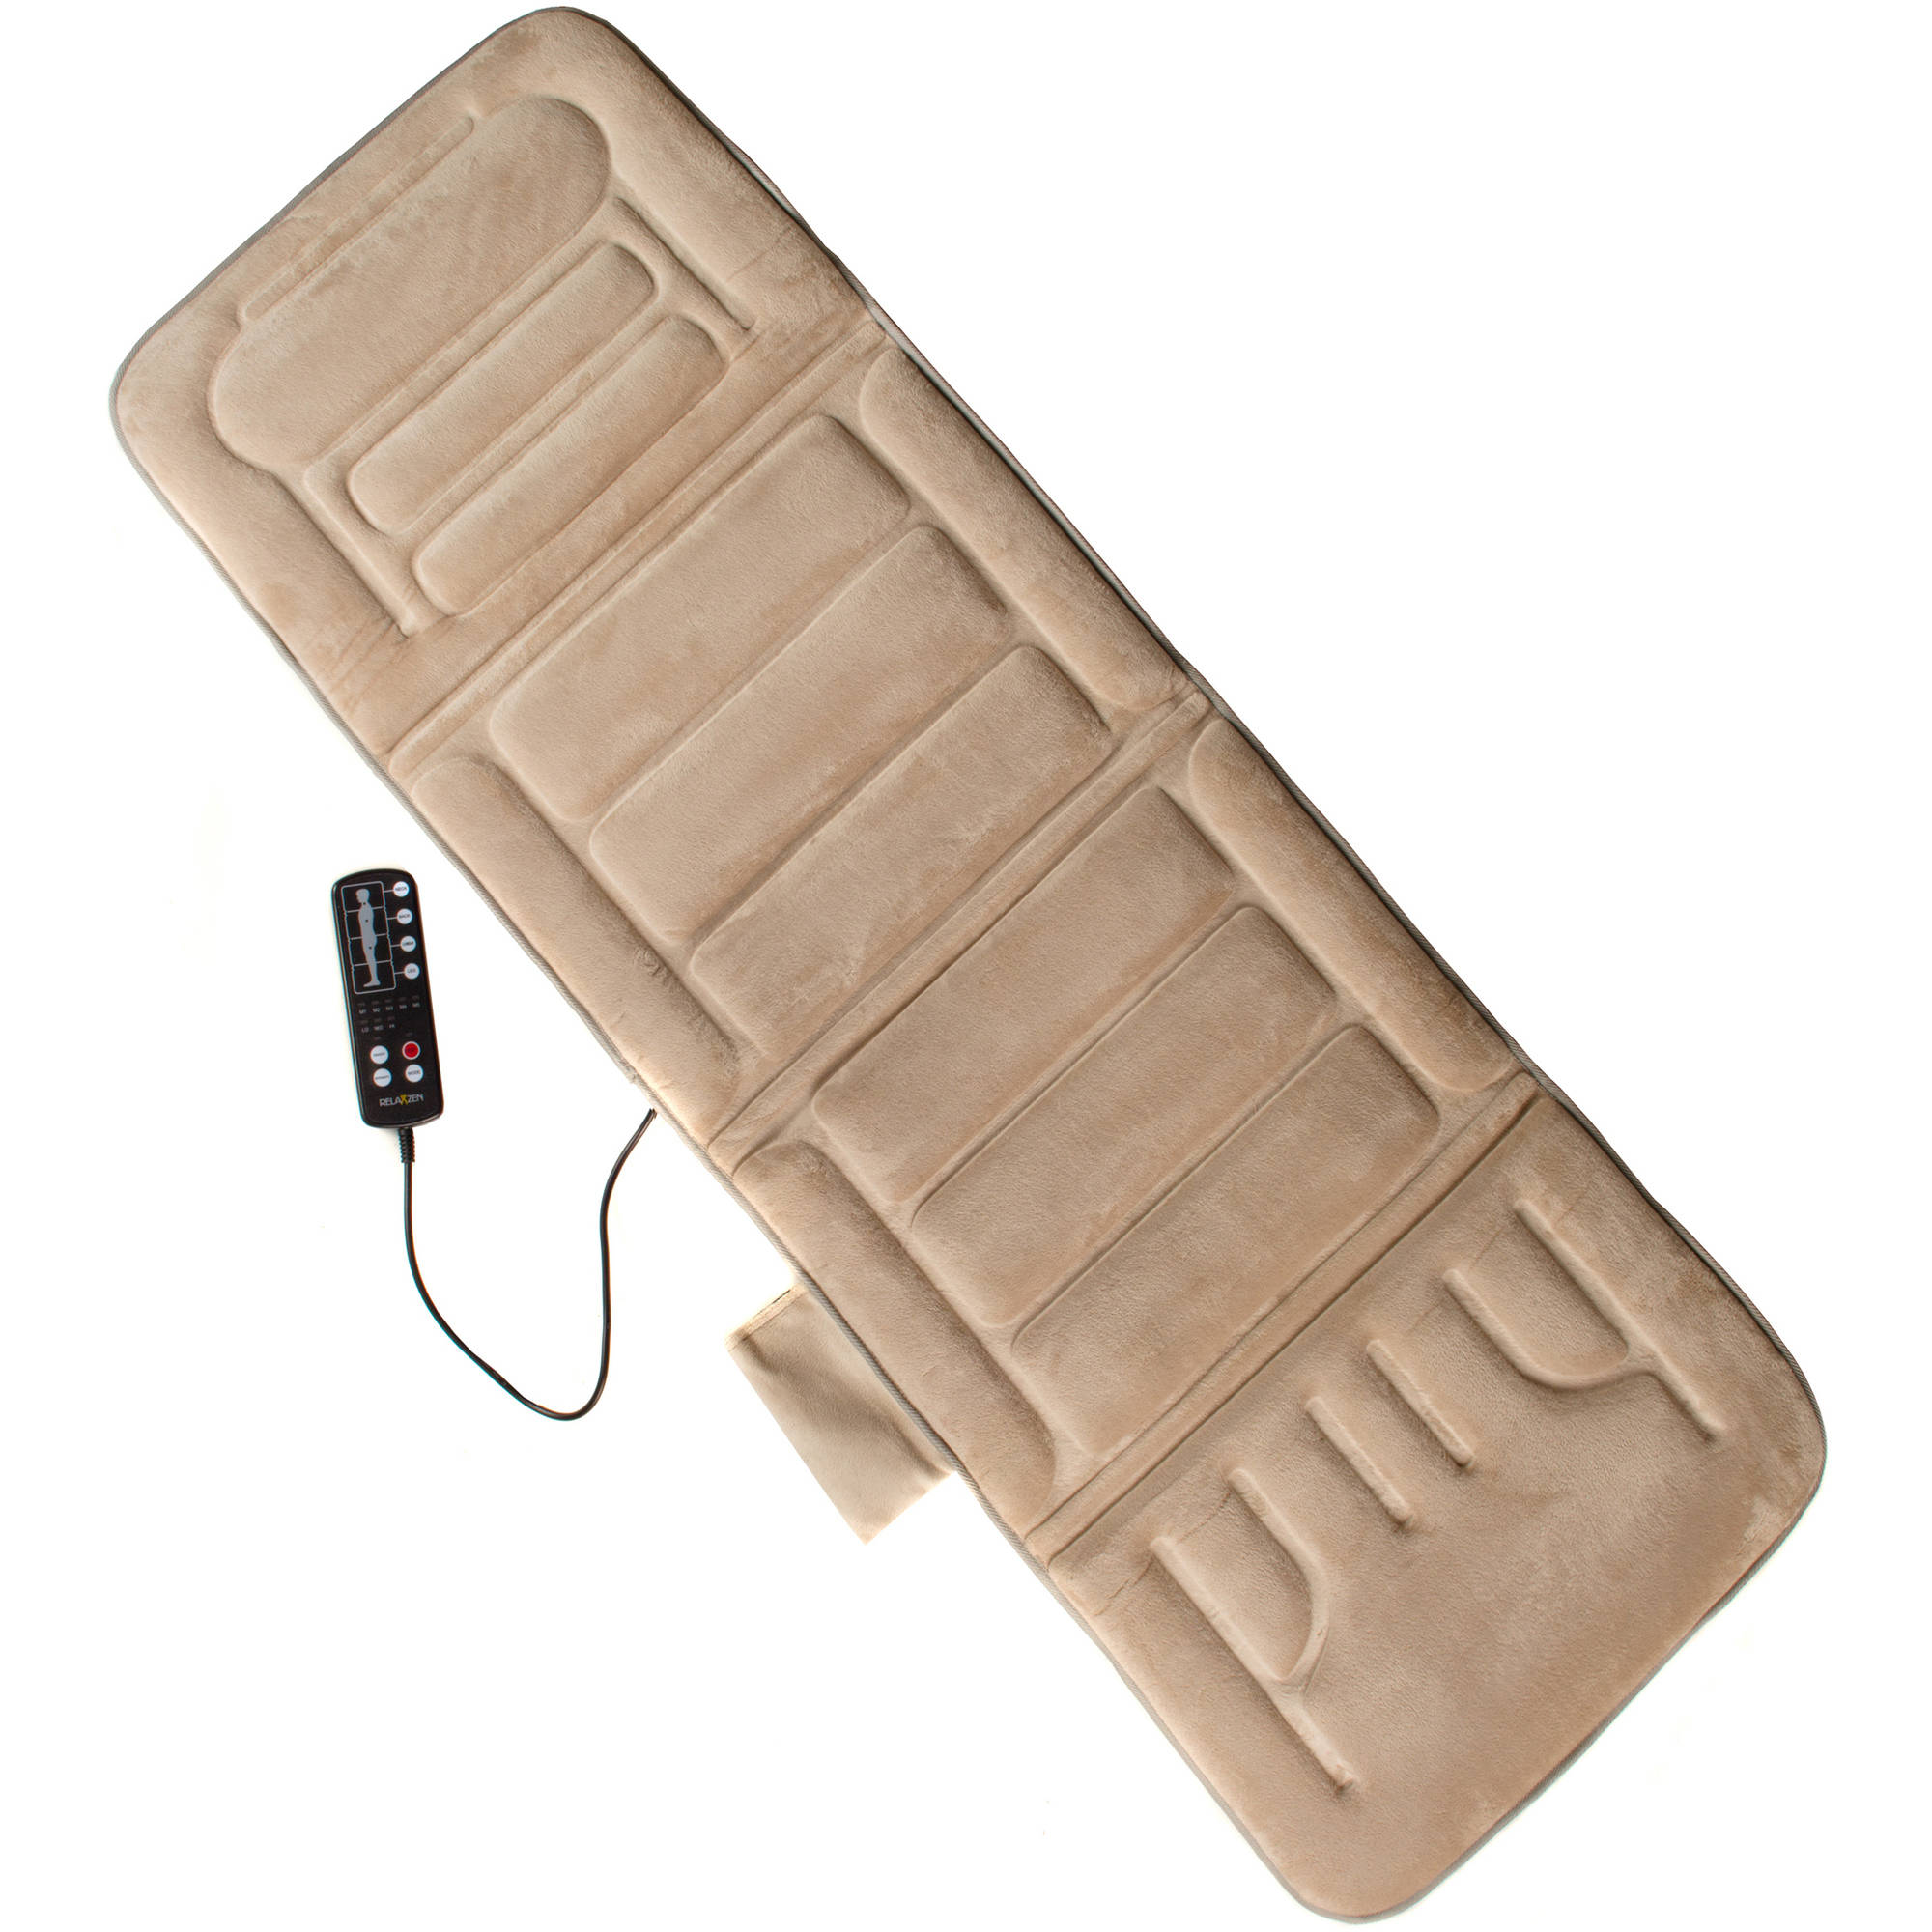 Relaxzen Memory Foam Lumbar Support Massage Cushion with Heat